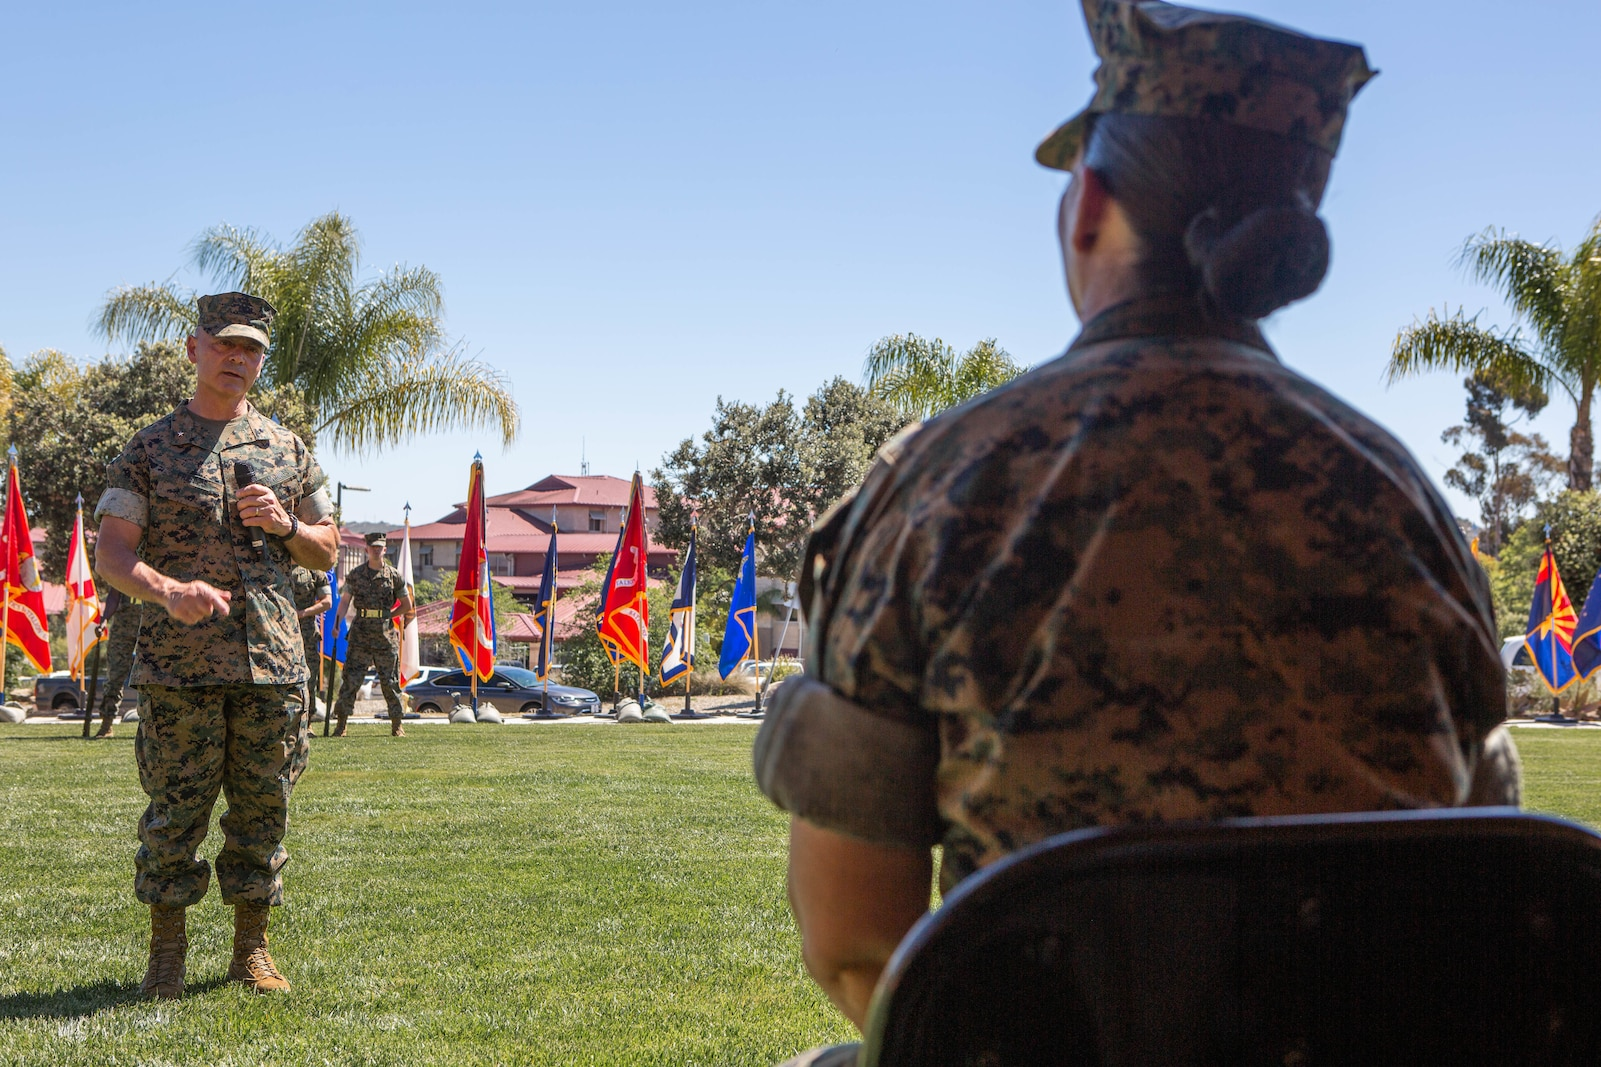 U.S. Marine Corps Brig. Gen. Bobbi Shea, outgoing Commanding General, gives remarks during the 1st Marine Logistics Group change of command ceremony.